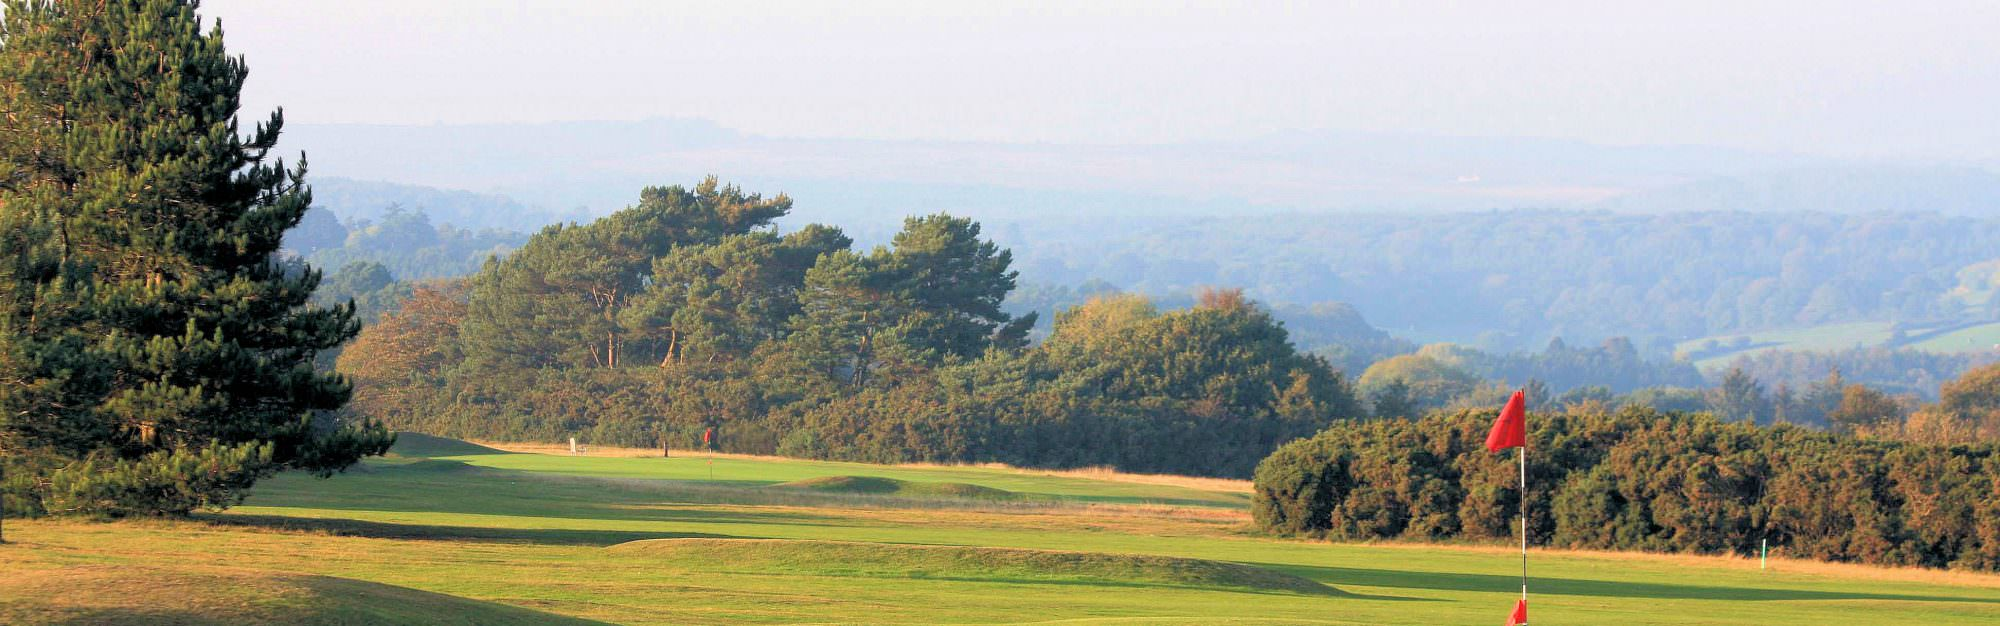 East Devon: A clifftop paradise with 'one of the best views in golf'